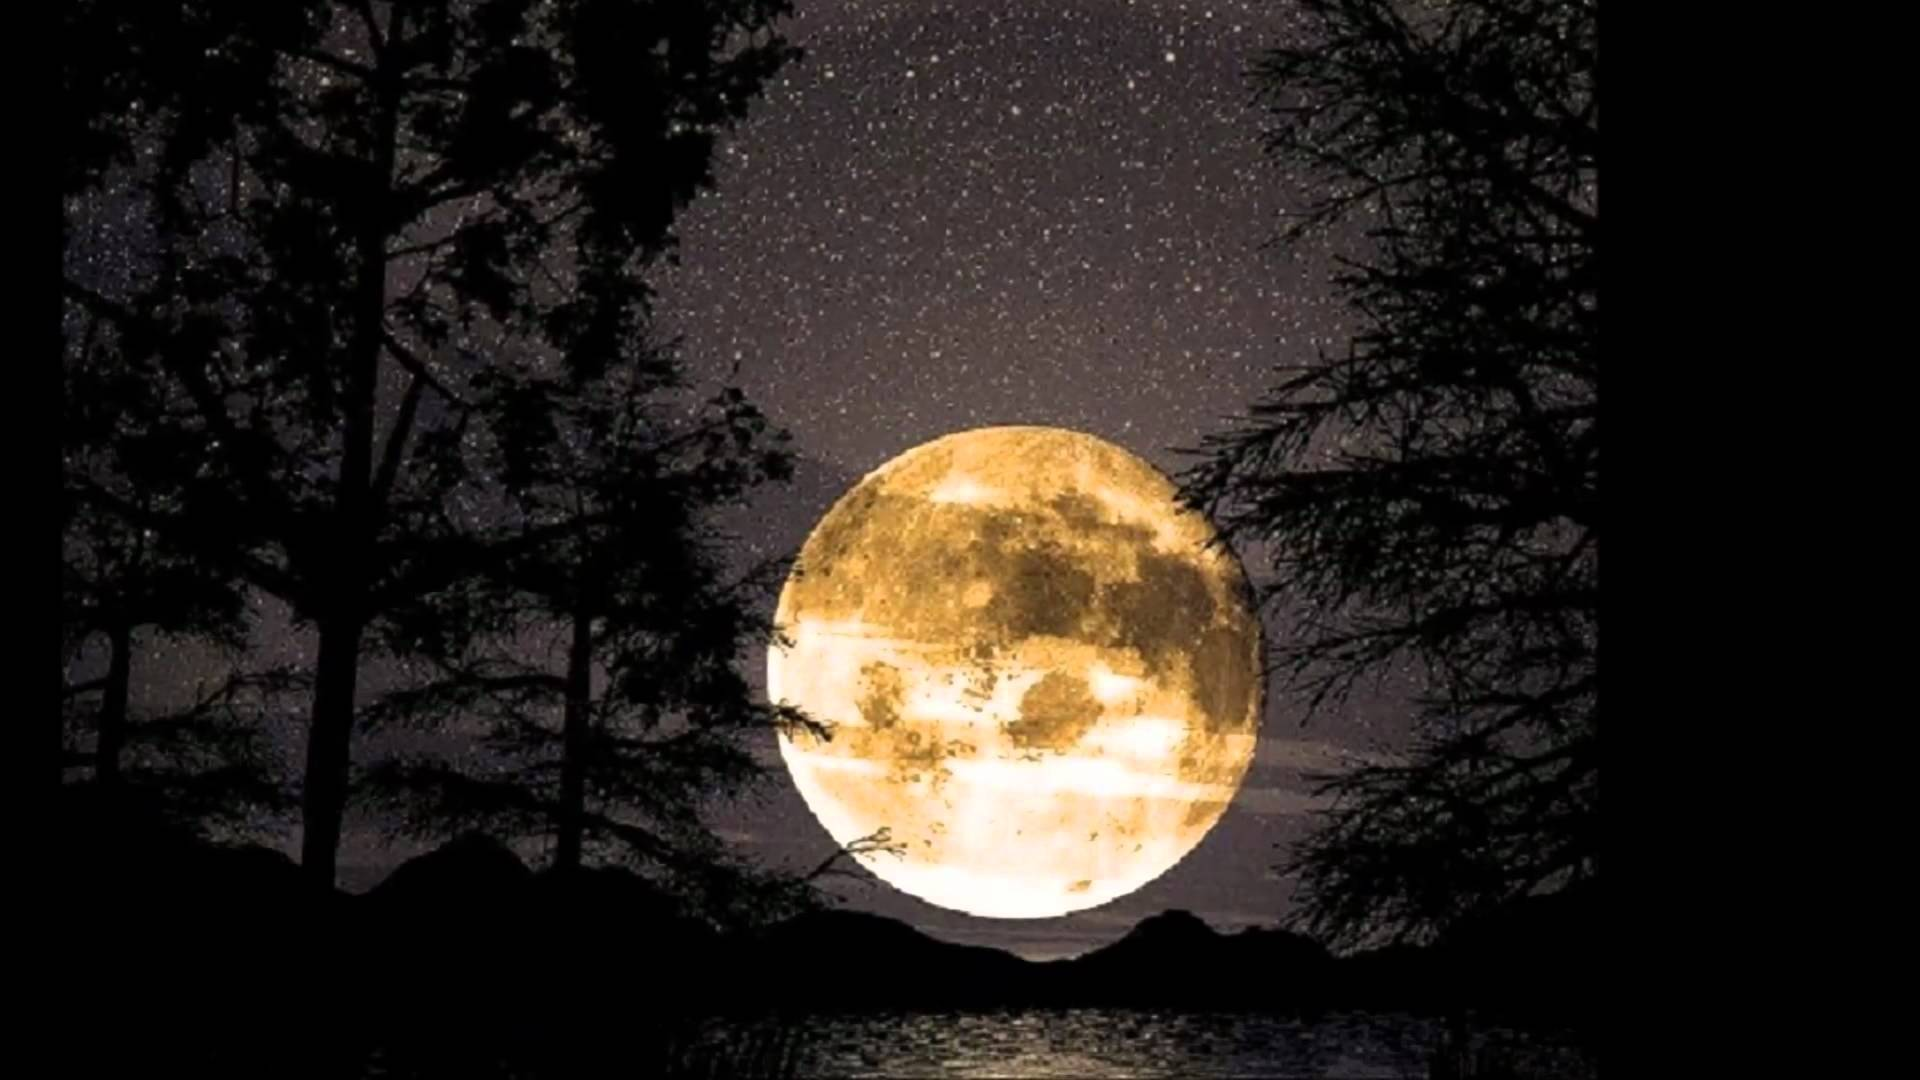 Timelapse Captures Stunning Harvest Moon in Scituate, Massachusetts